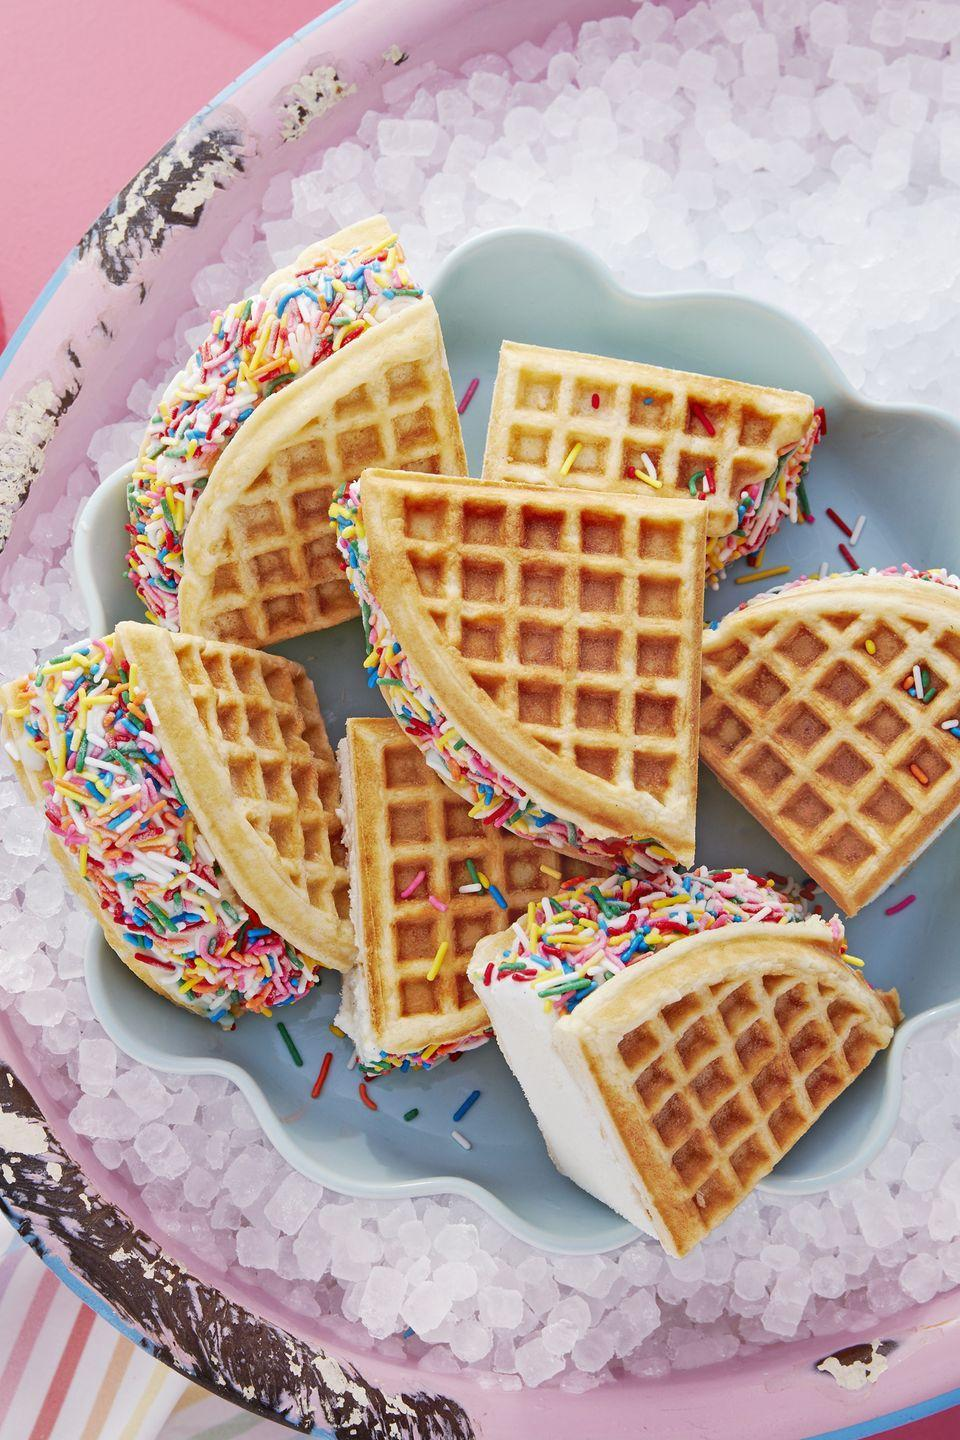 """<p>Start off your Memorial Day with a plate of waffles and then end it the exact same way. Now, that's the best way to spend your holiday.</p><p><a href=""""https://www.countryliving.com/food-drinks/a20748103/rainbow-waffle-sandwiches-recipe/"""" rel=""""nofollow noopener"""" target=""""_blank"""" data-ylk=""""slk:Get the recipe"""" class=""""link rapid-noclick-resp""""><strong>Get the recipe</strong></a><strong>.</strong></p><p><a class=""""link rapid-noclick-resp"""" href=""""https://www.amazon.com/gp/product/B000TYBWIG/?tag=syn-yahoo-20&ascsubtag=%5Bartid%7C10050.g.3290%5Bsrc%7Cyahoo-us"""" rel=""""nofollow noopener"""" target=""""_blank"""" data-ylk=""""slk:SHOP WAFFLE MAKERS"""">SHOP WAFFLE MAKERS</a> </p>"""